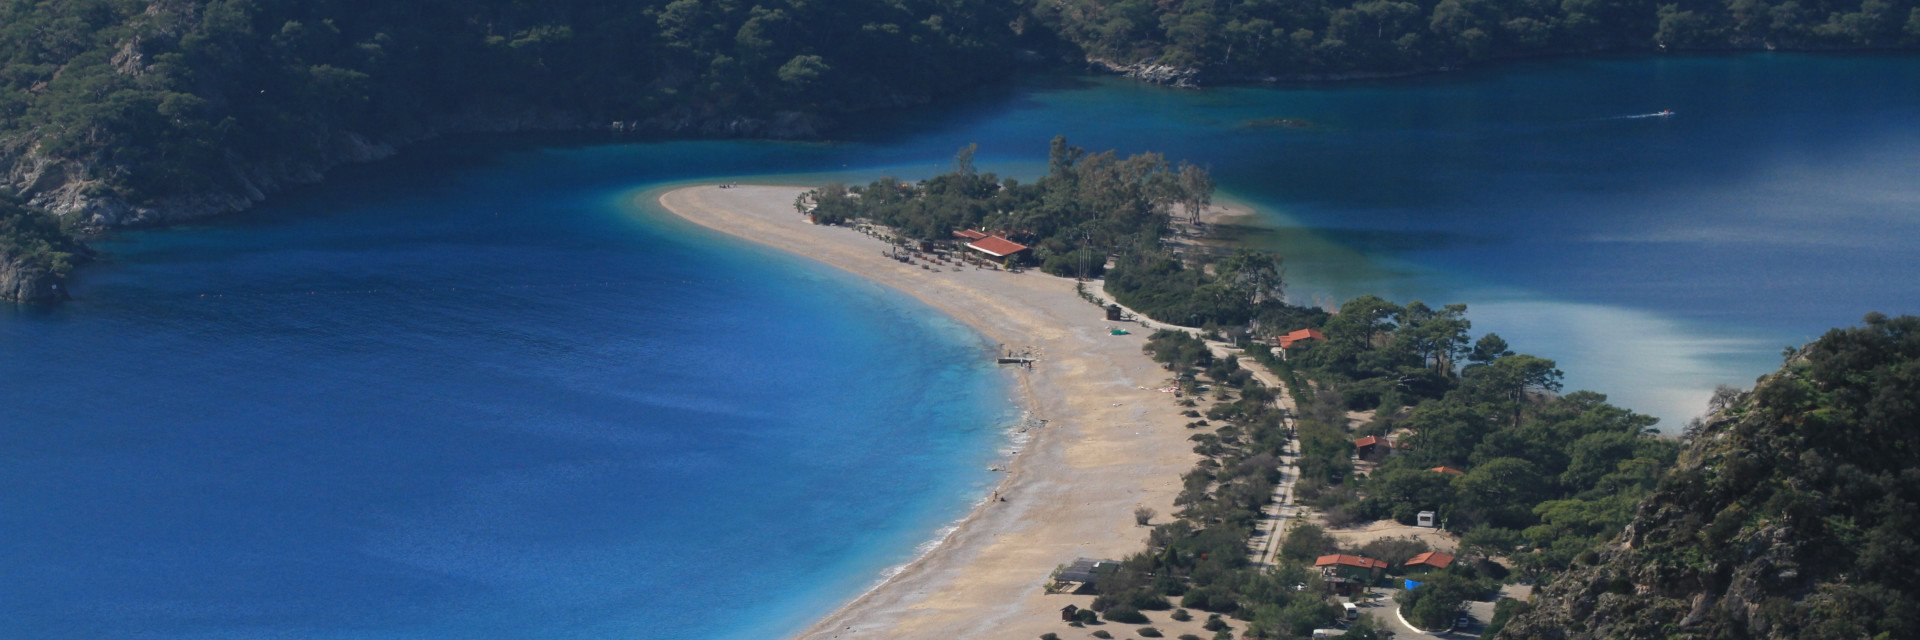 Fethiye Travel Guide - All You Need To Know